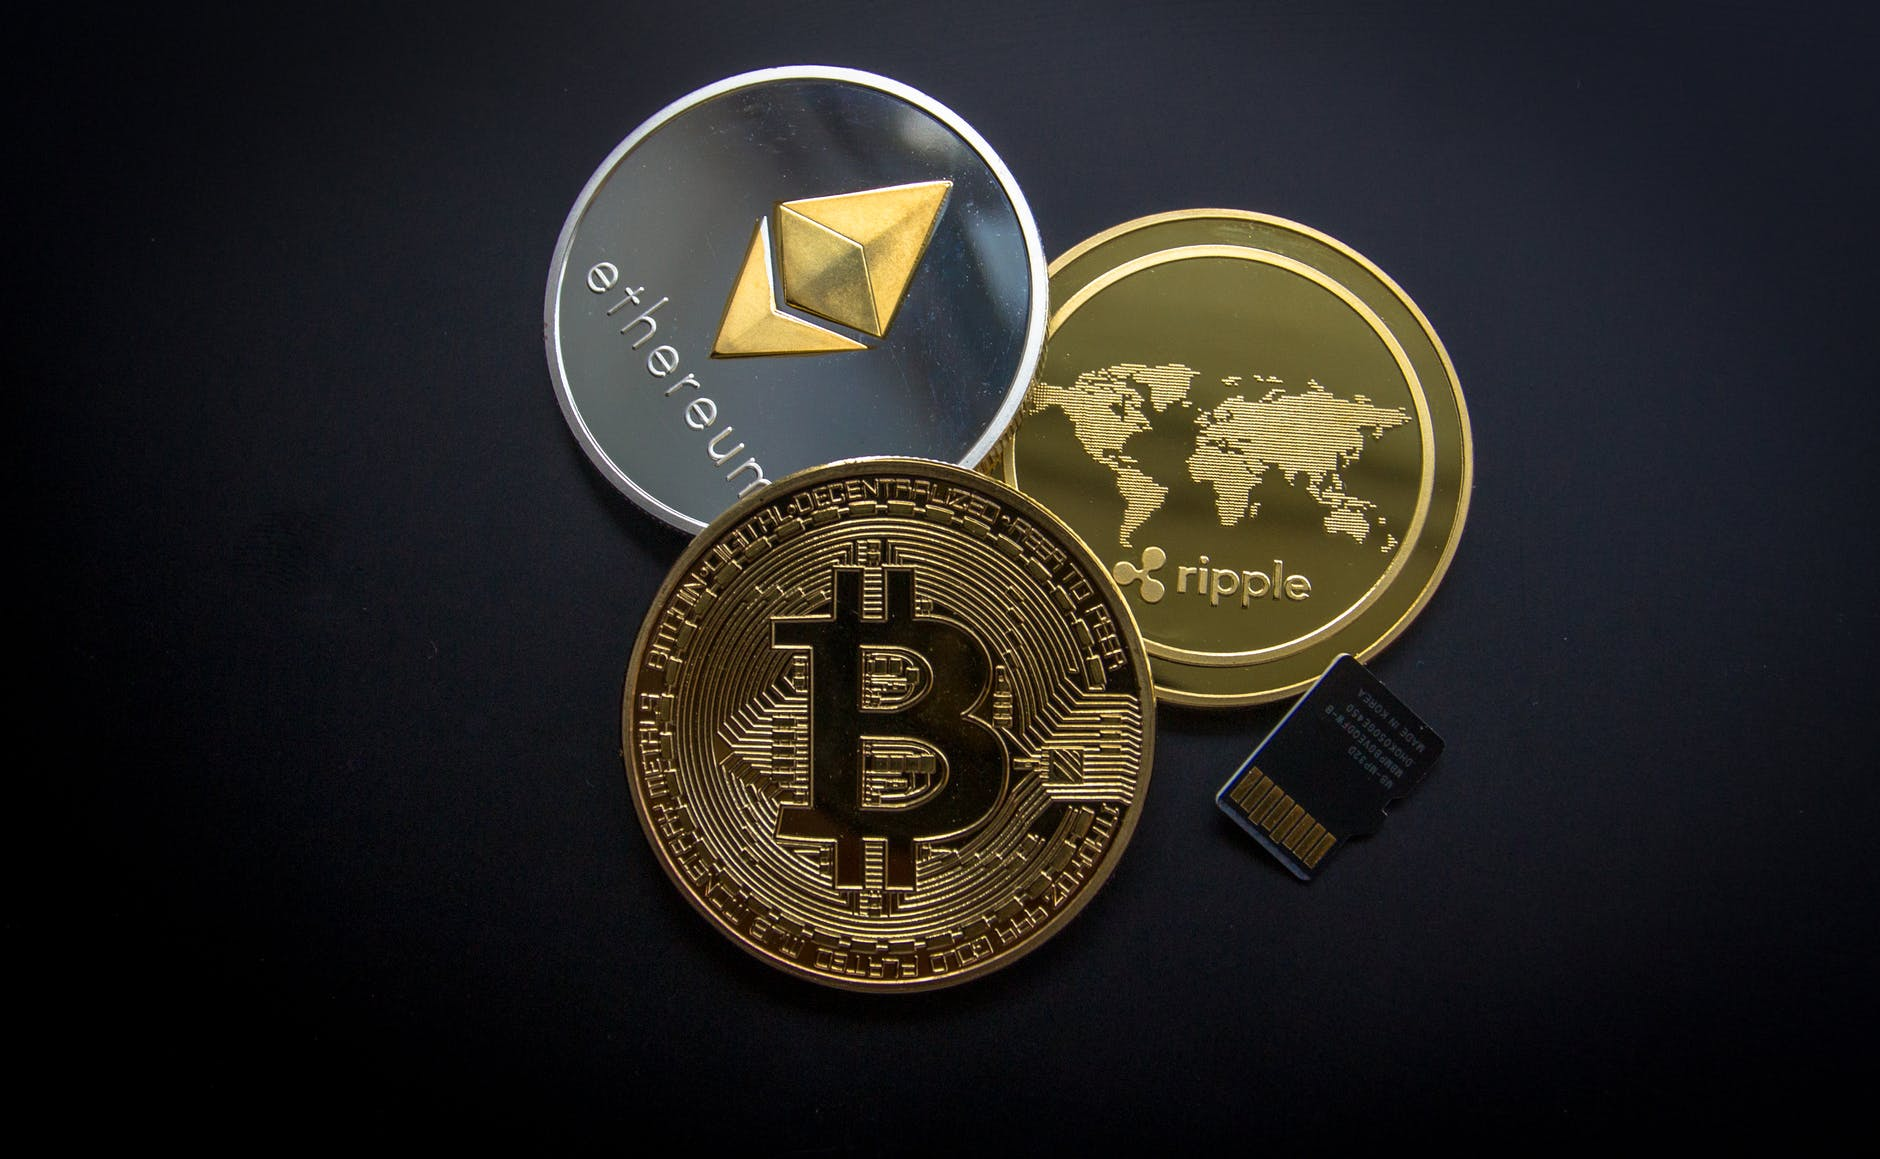 How to Select the Best Cryptocurrency for Investing